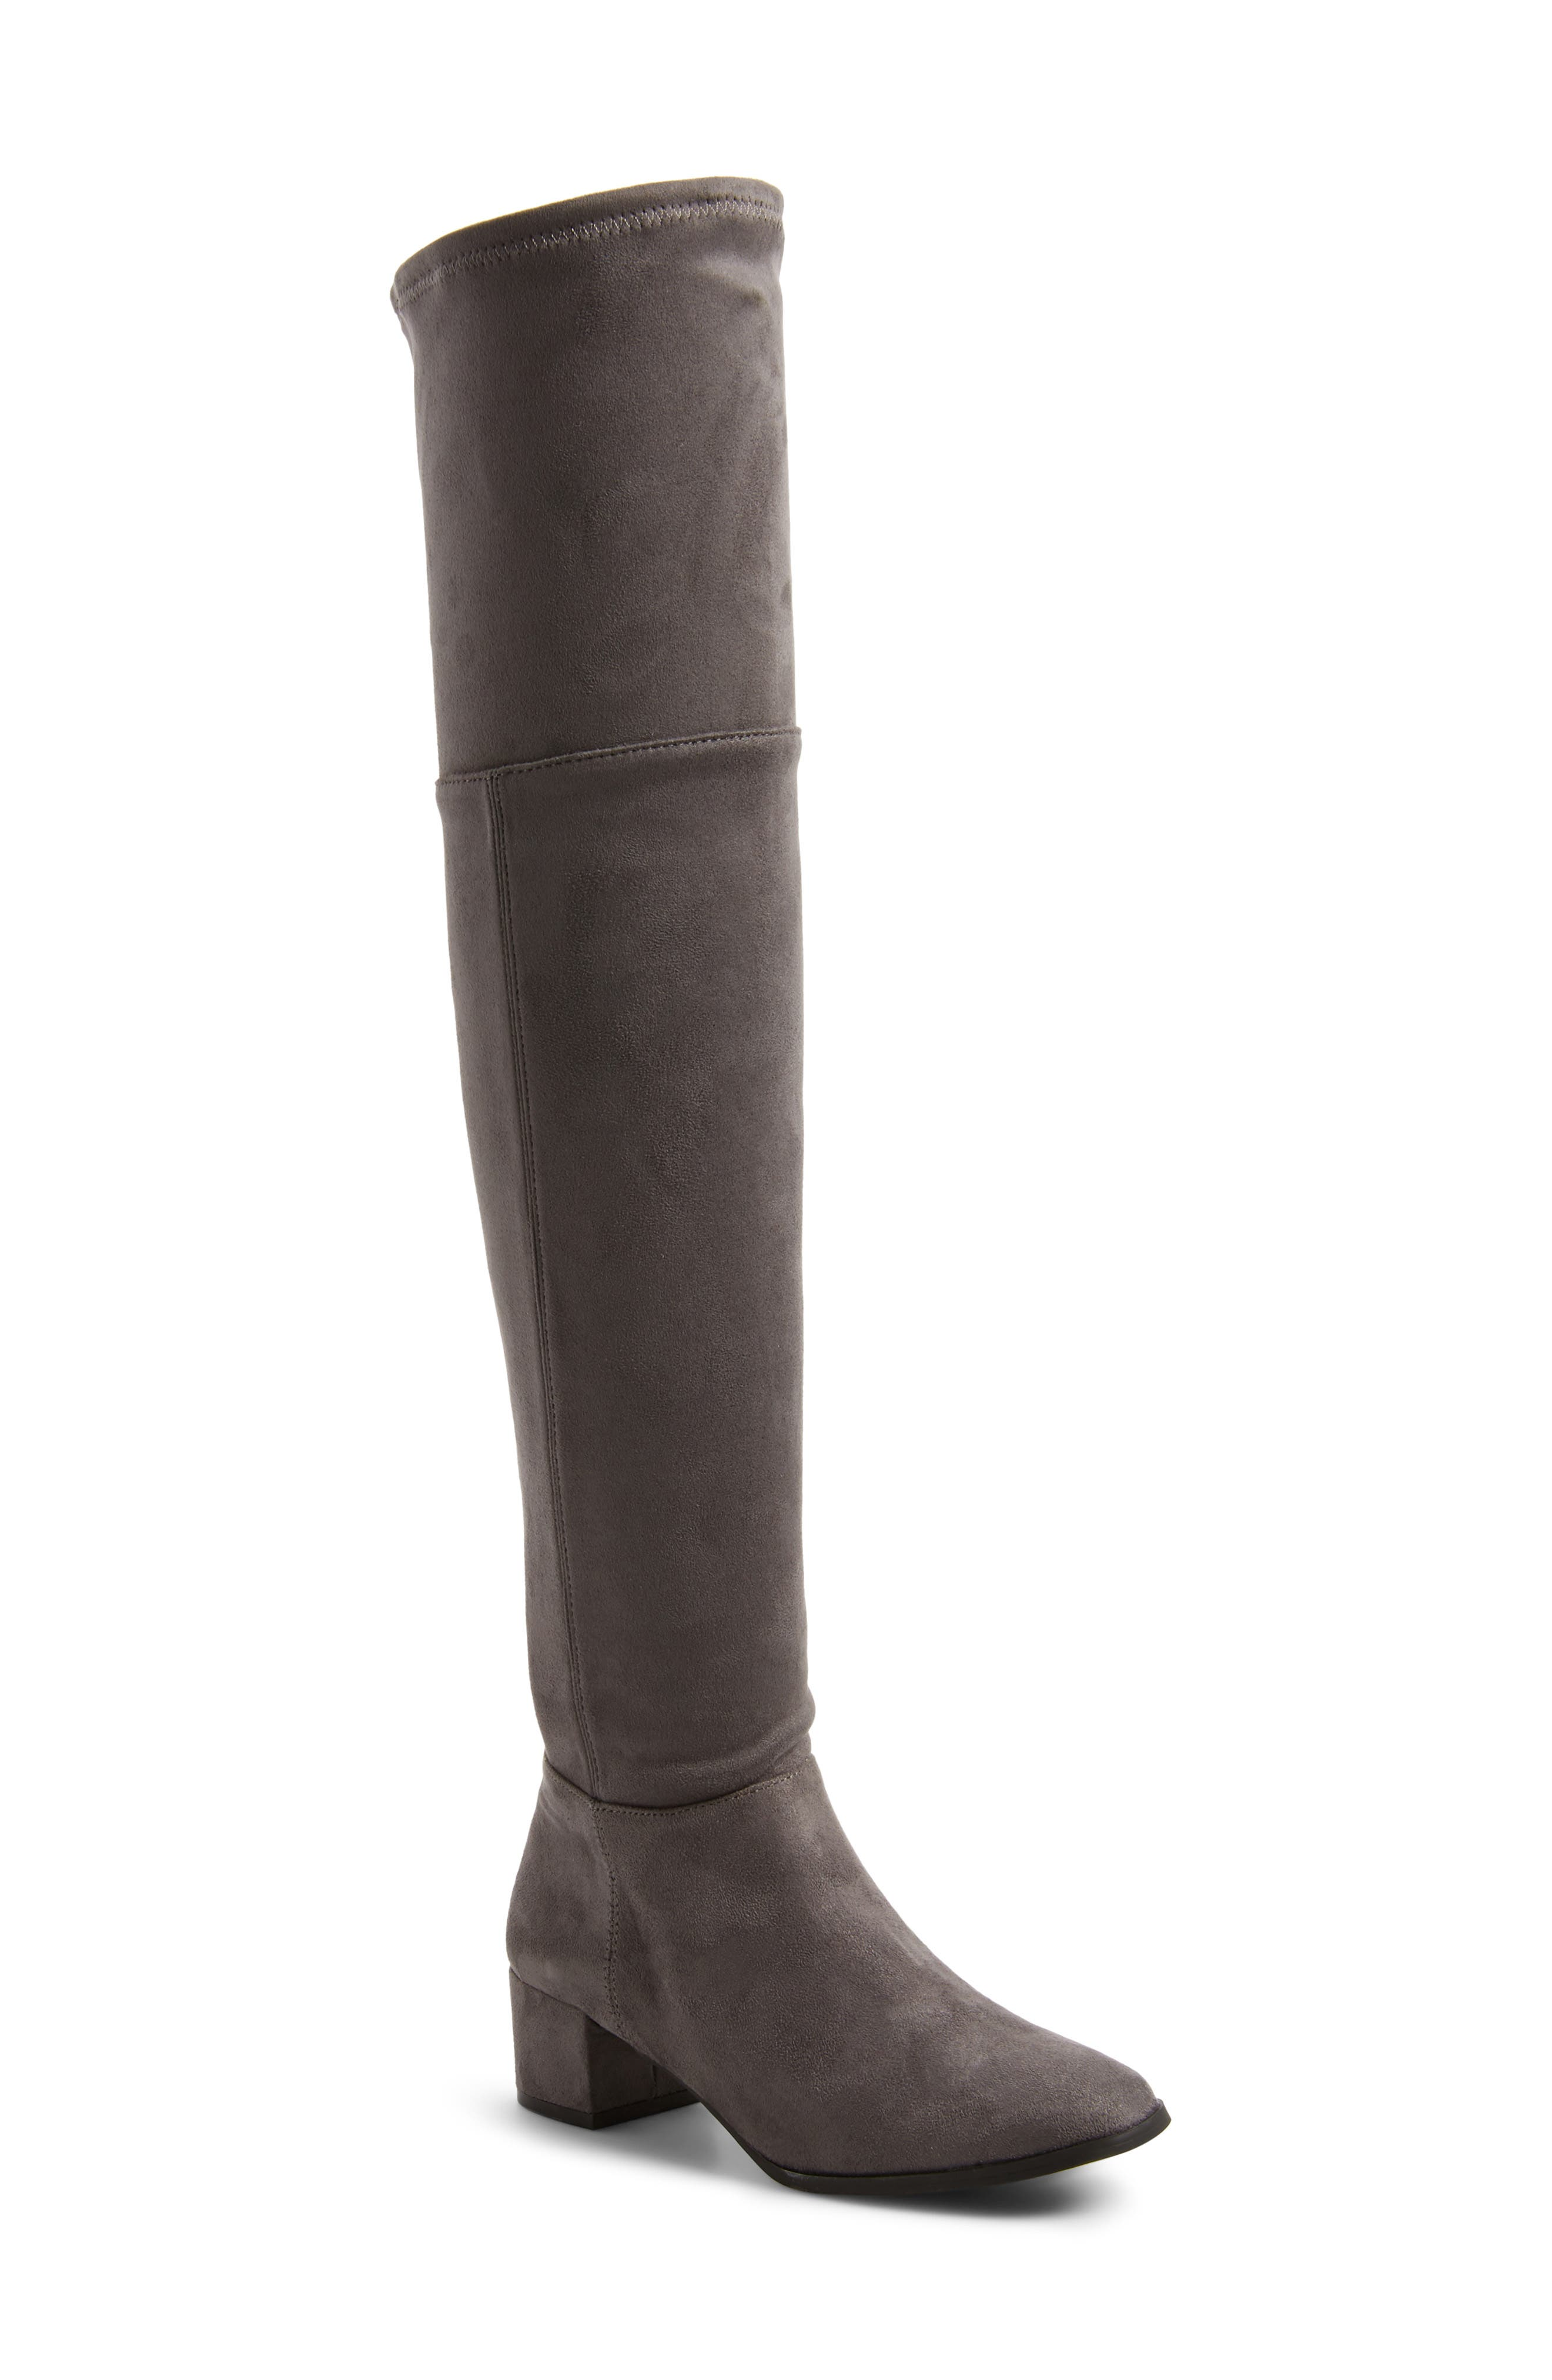 Festive Over the Knee Boot,                         Main,                         color, Mink